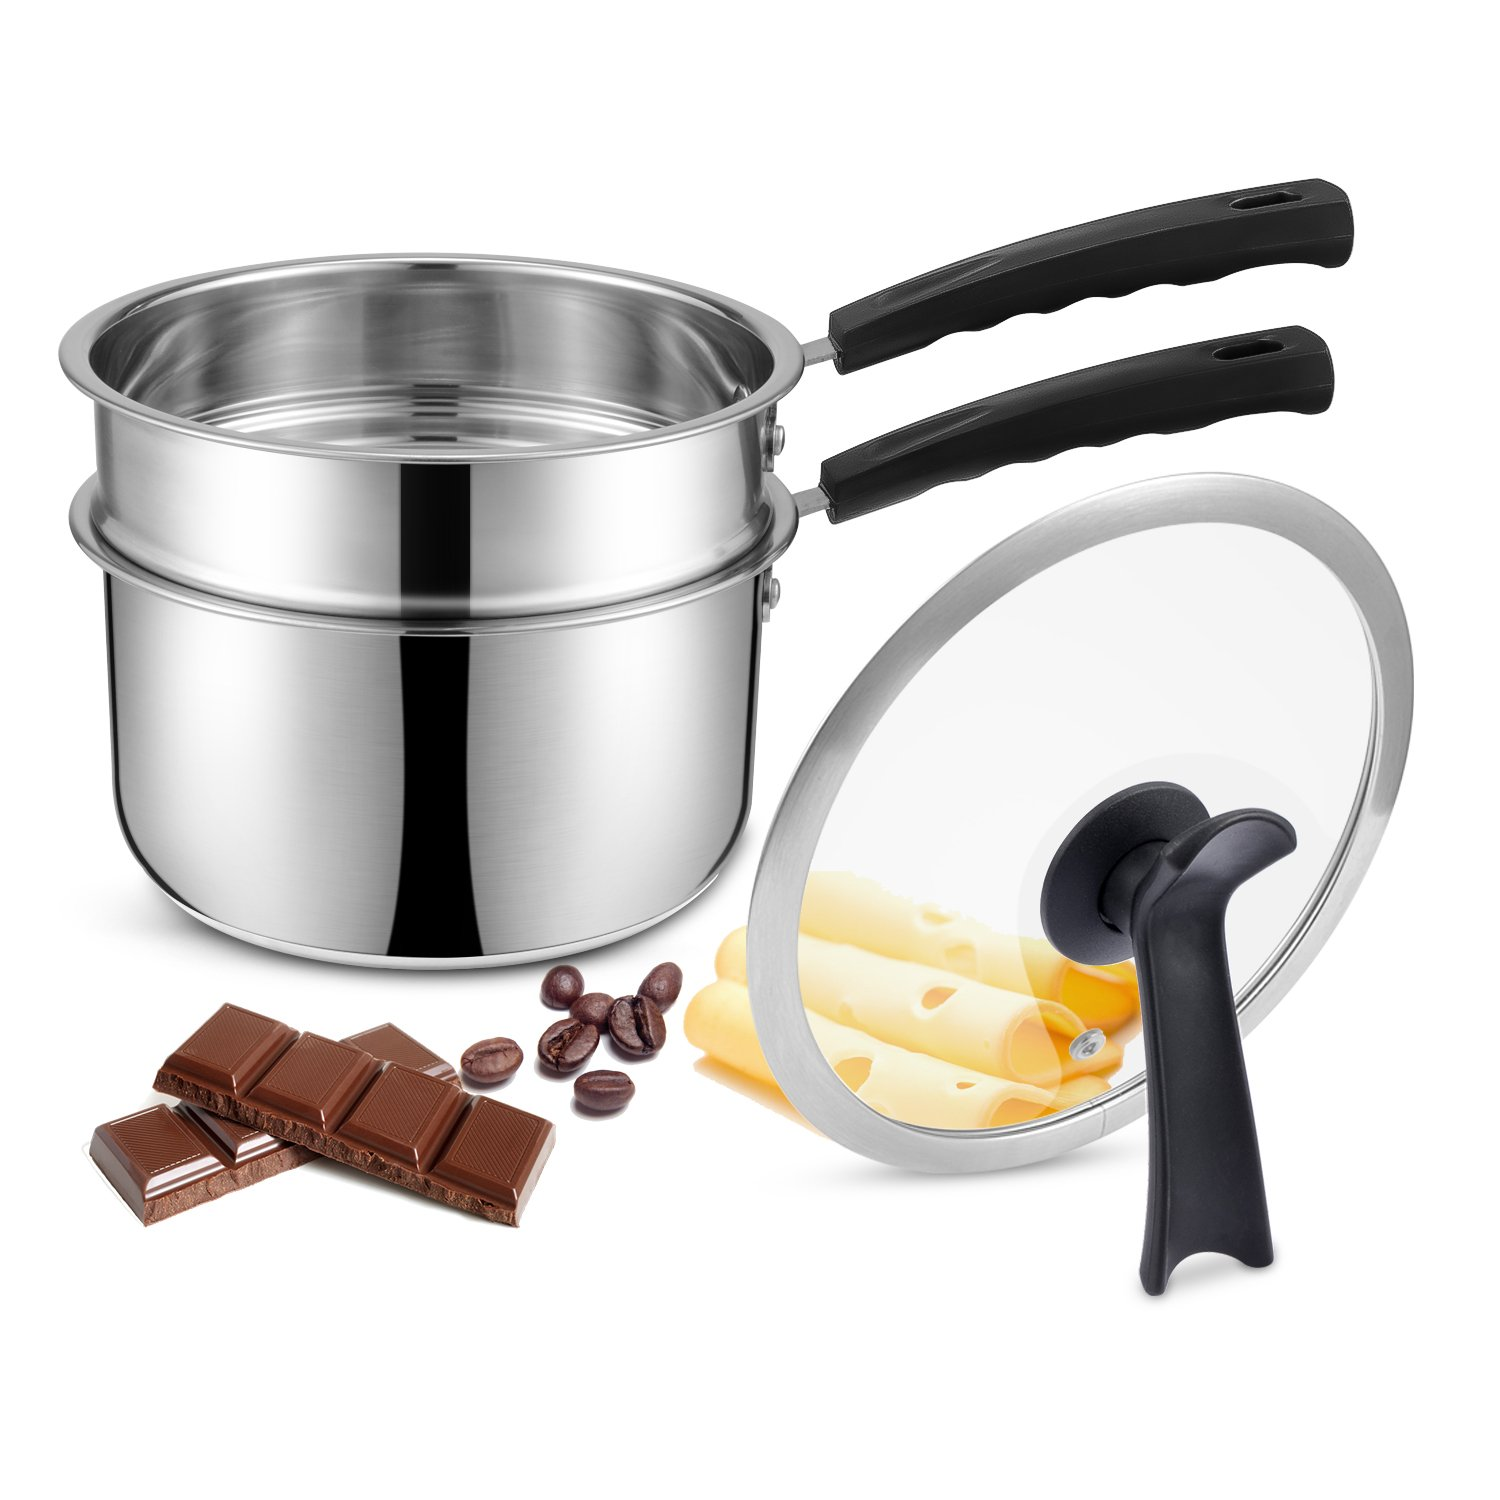 Double Boilers&Classic Stainless Steel Non-Stick Saucepan,Steam Melting Pot for Candle,Butter,Chocolate,Cheese,Caramel and Bonus with Tempered Glass Lid by JKsmart